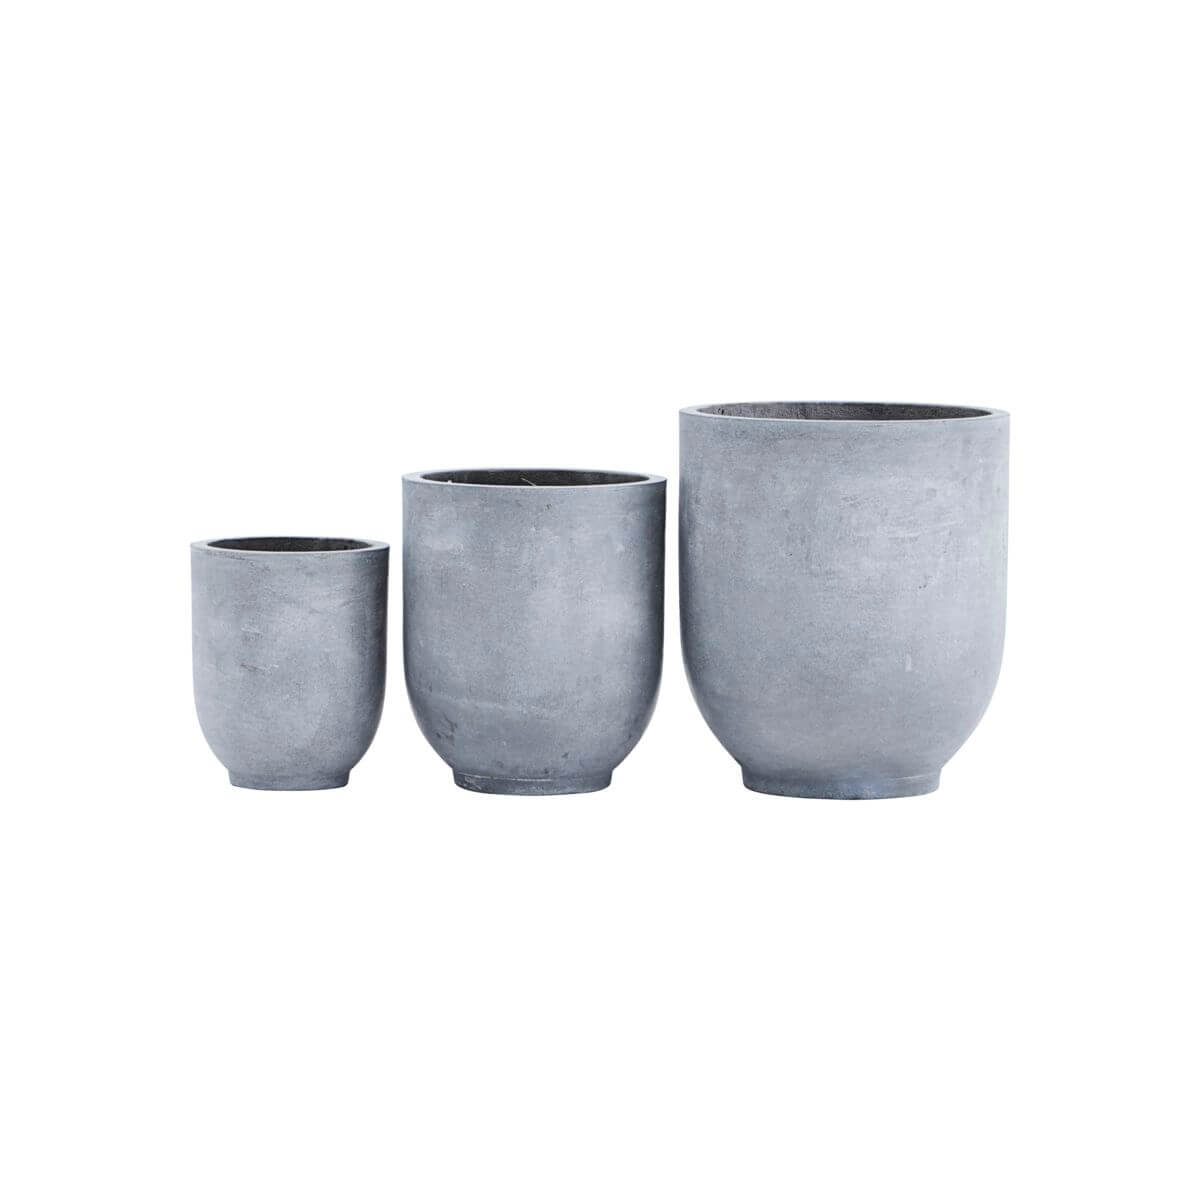 House Doctor Planter Gards Grey - S/M/L